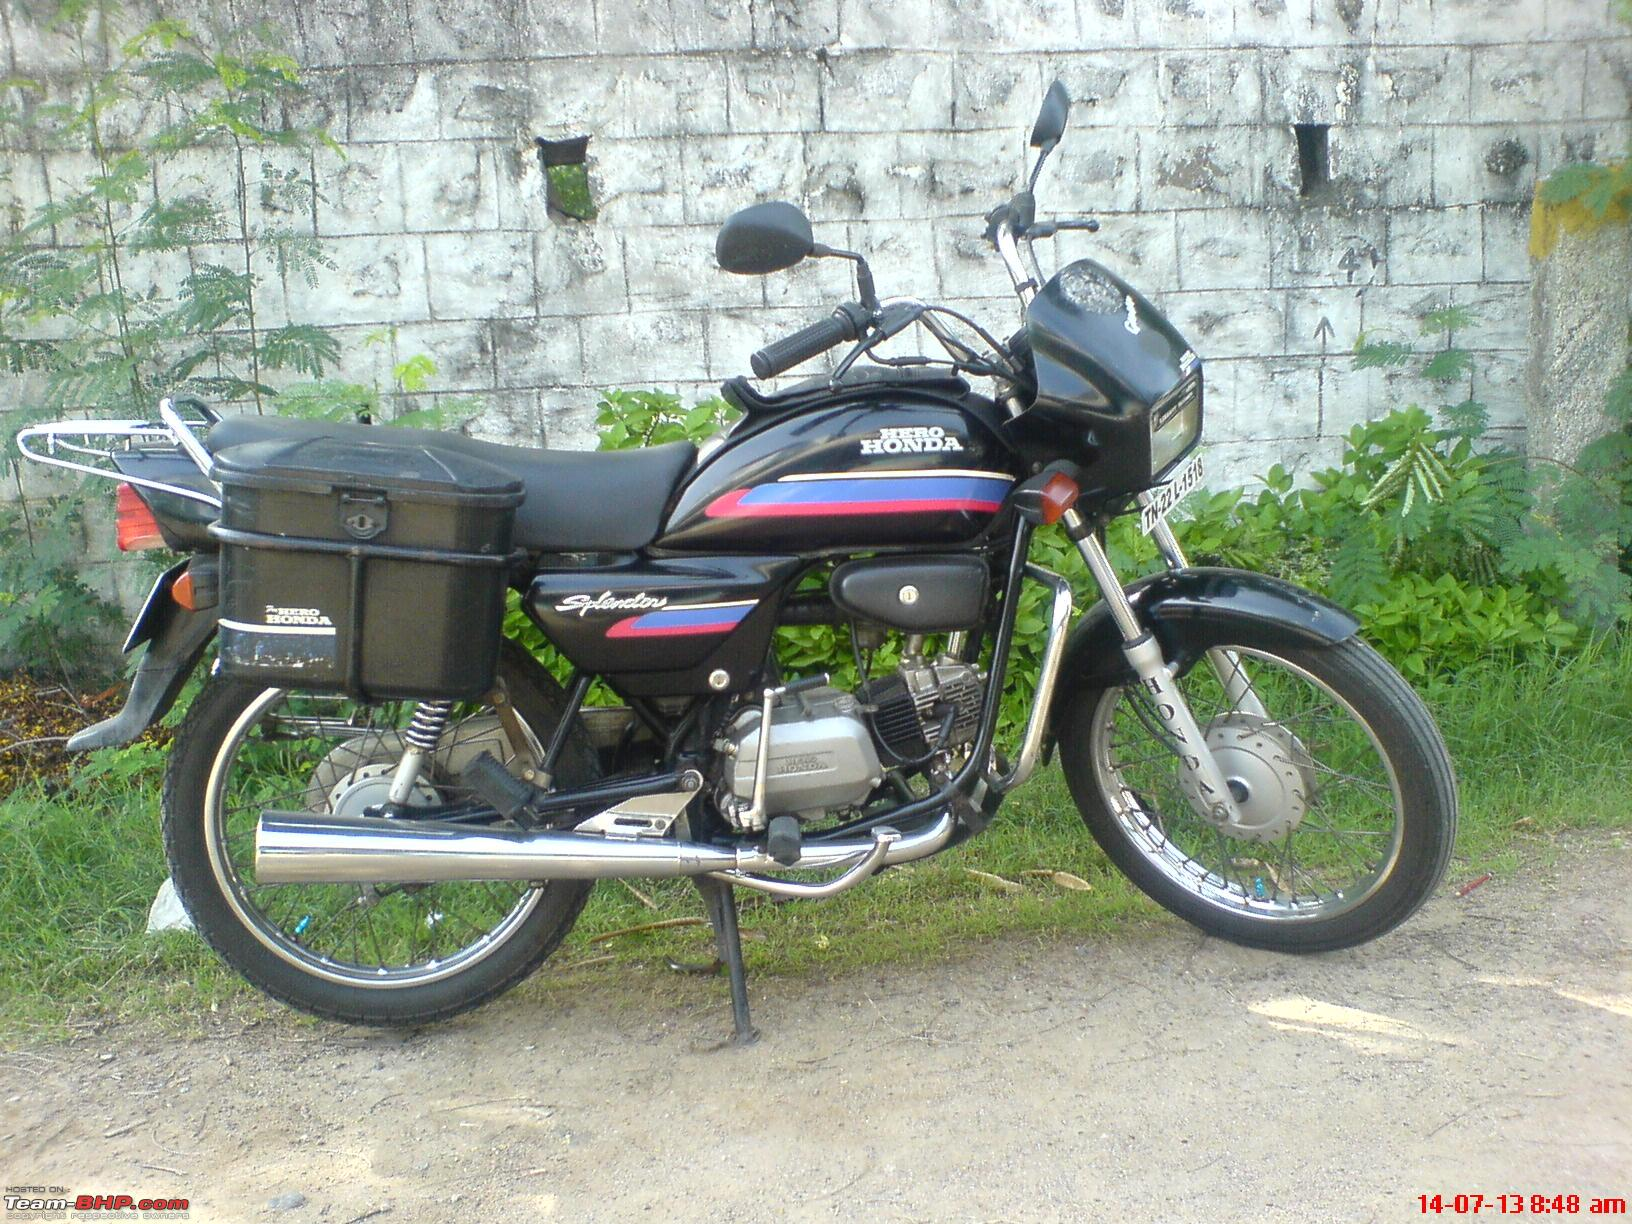 Hero motocorp HERO SPLENDOR CLASSIC